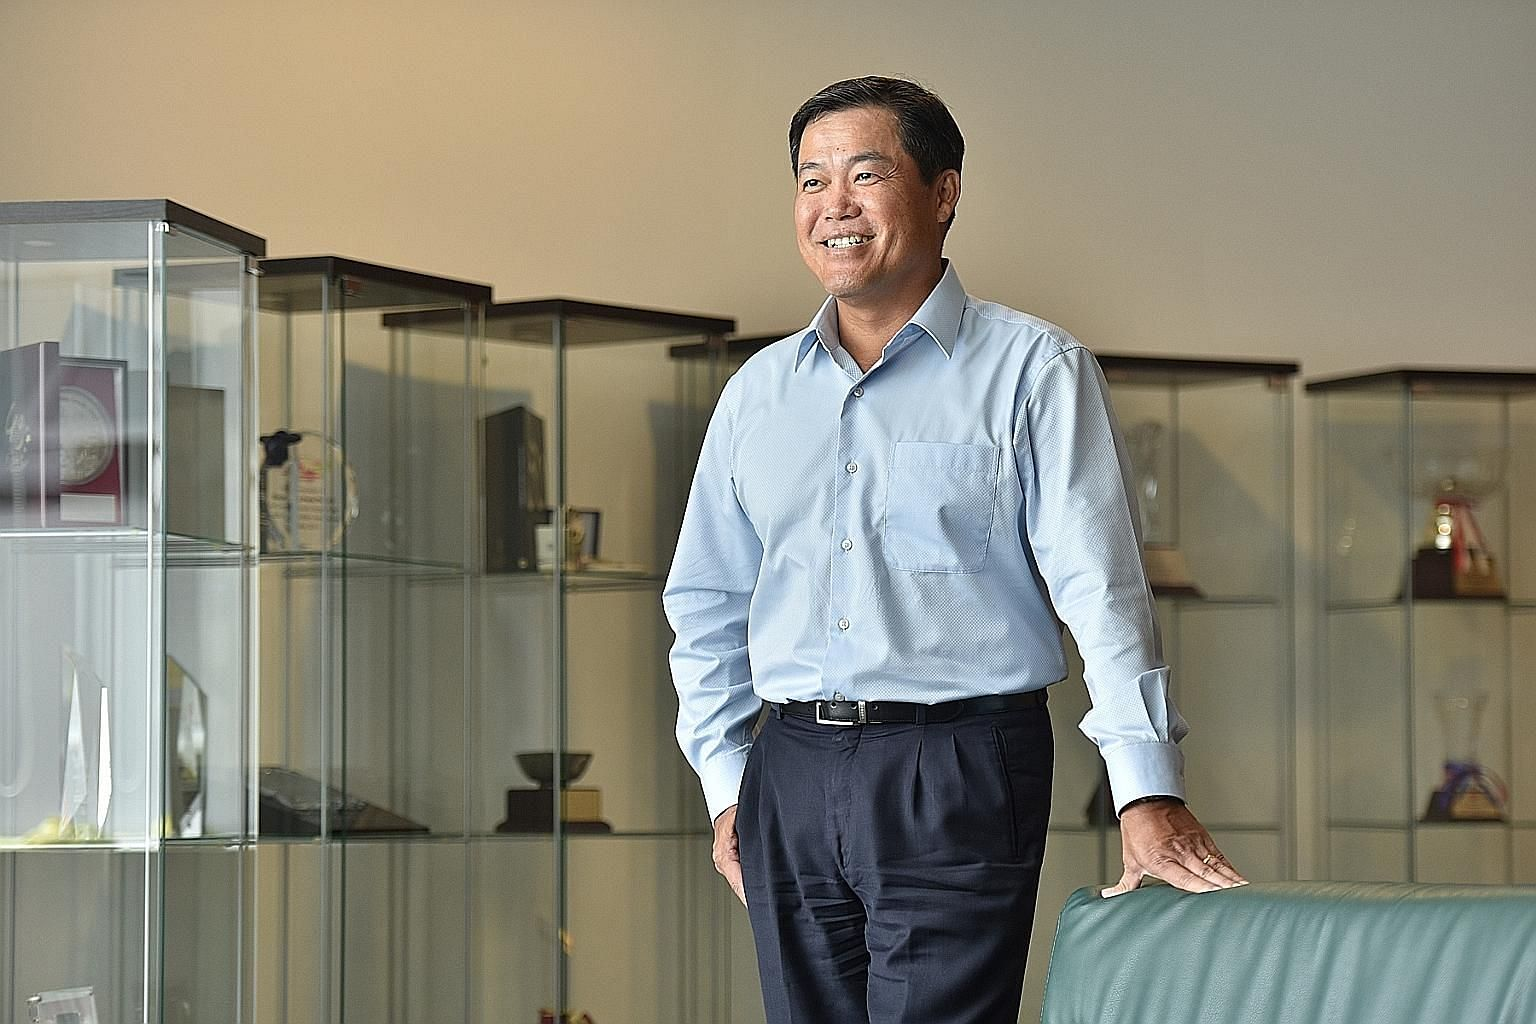 Singapore Pools chief executive Seah Chin Siong says one of his career highlights as head of Singapore Pools was making use of the group's IT resources to help in the digital transformation of charities in Singapore. He will take over as president an